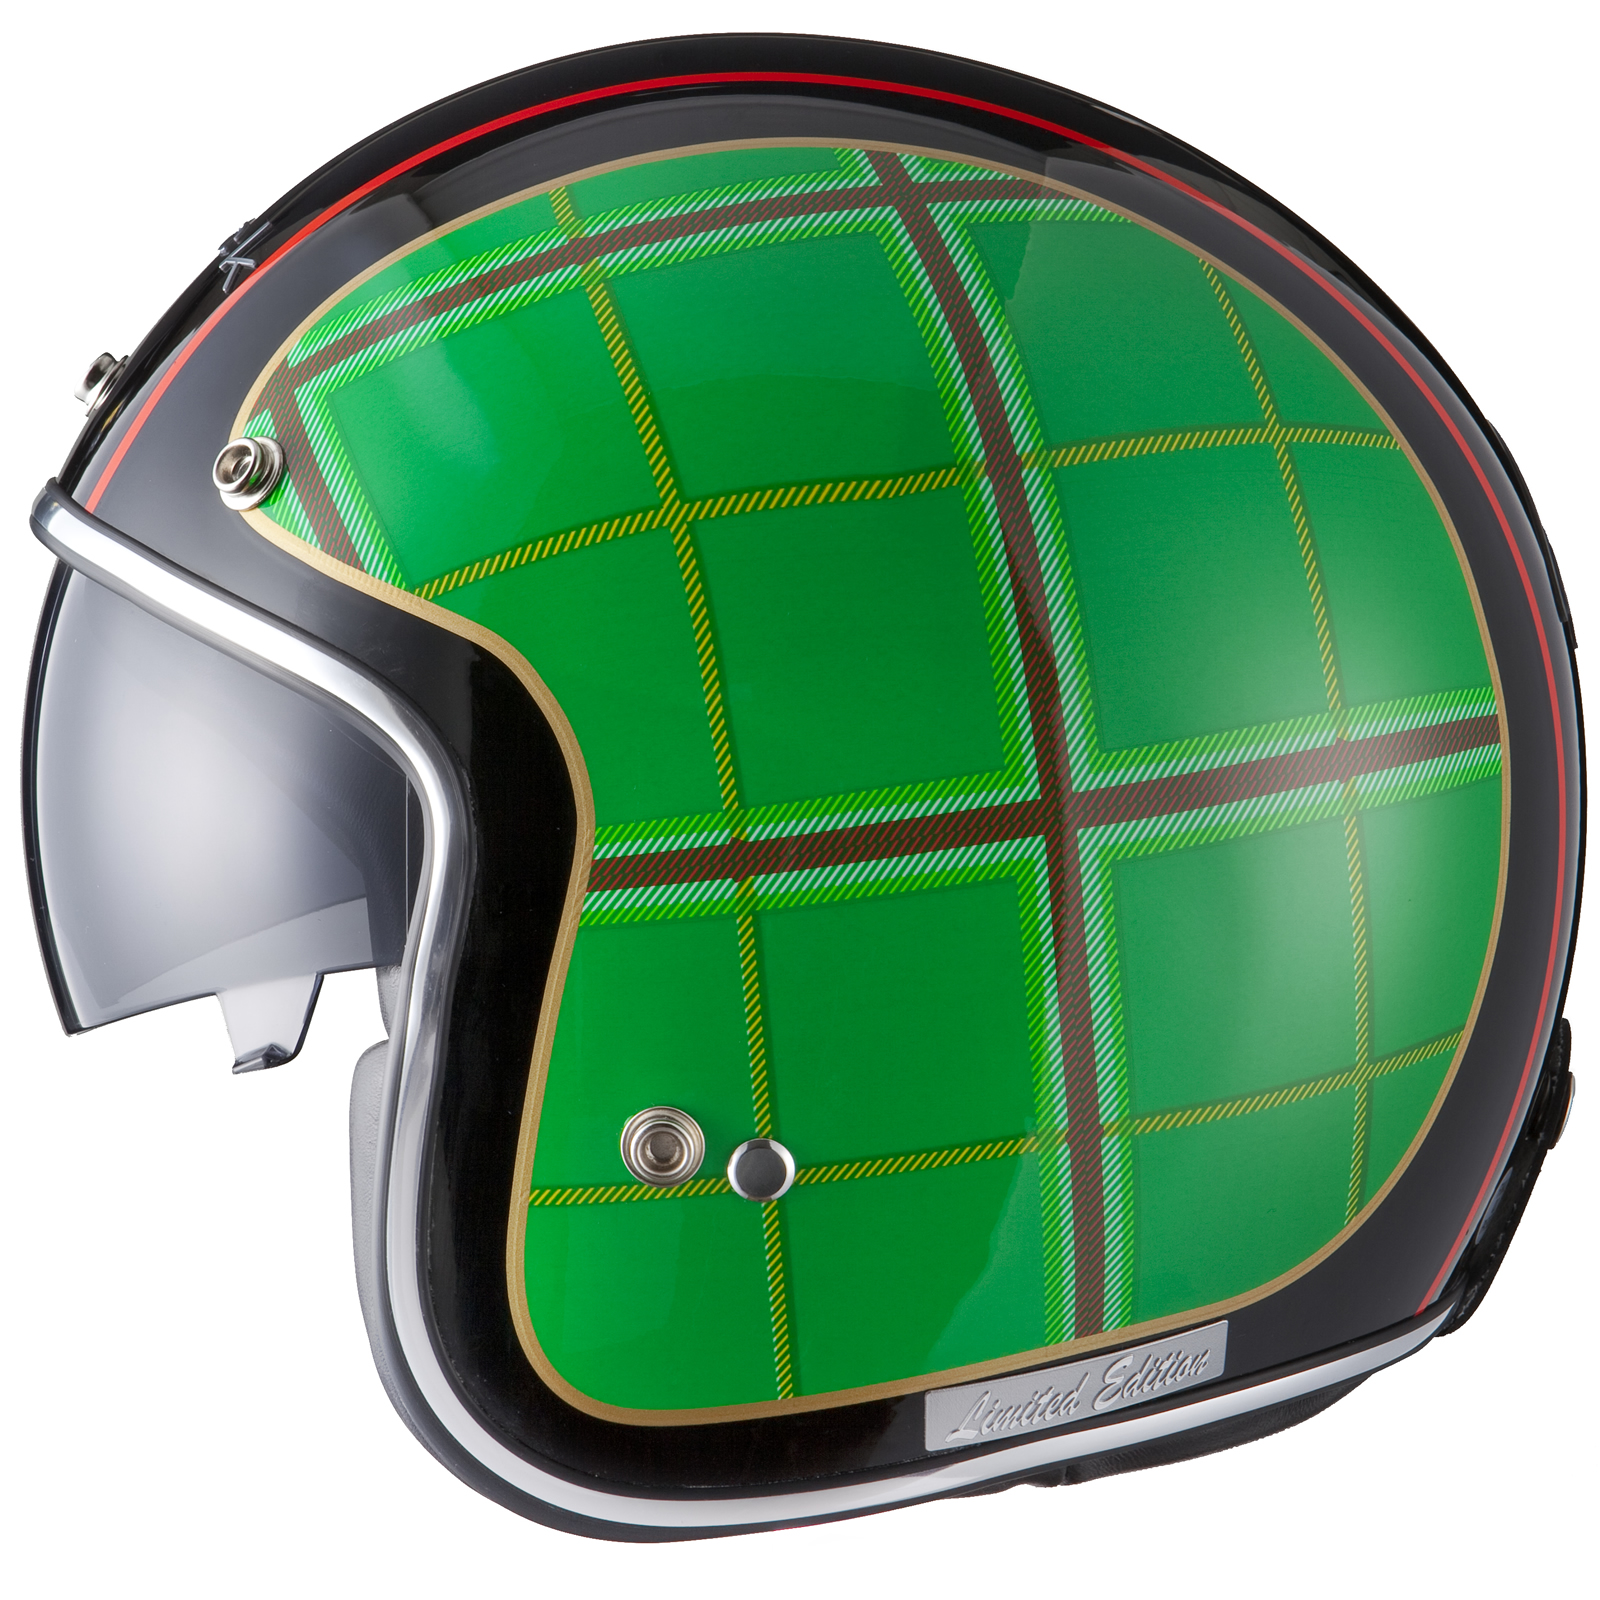 Edition-Limitee-Black-Highland-Tartan-Retro-Casque-Moto-Scooter-Jet-Ecosse